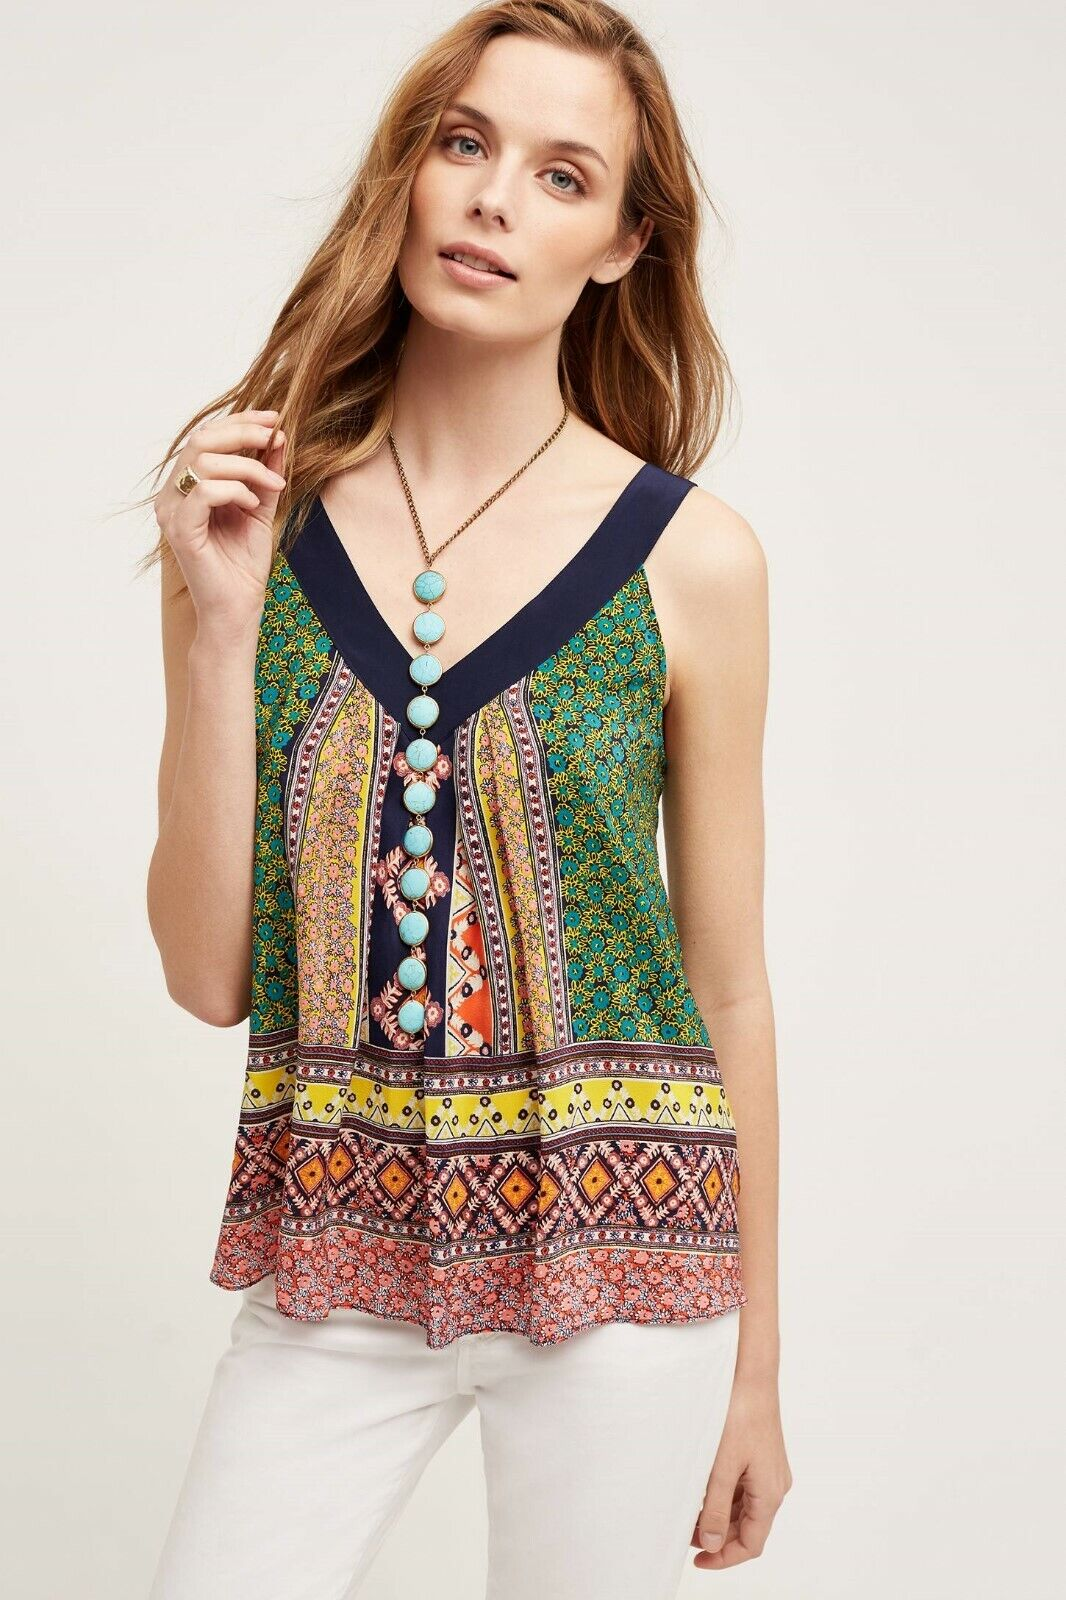 NEW Anthropologie Maeve Sapelo Tank Blouse Größe 6